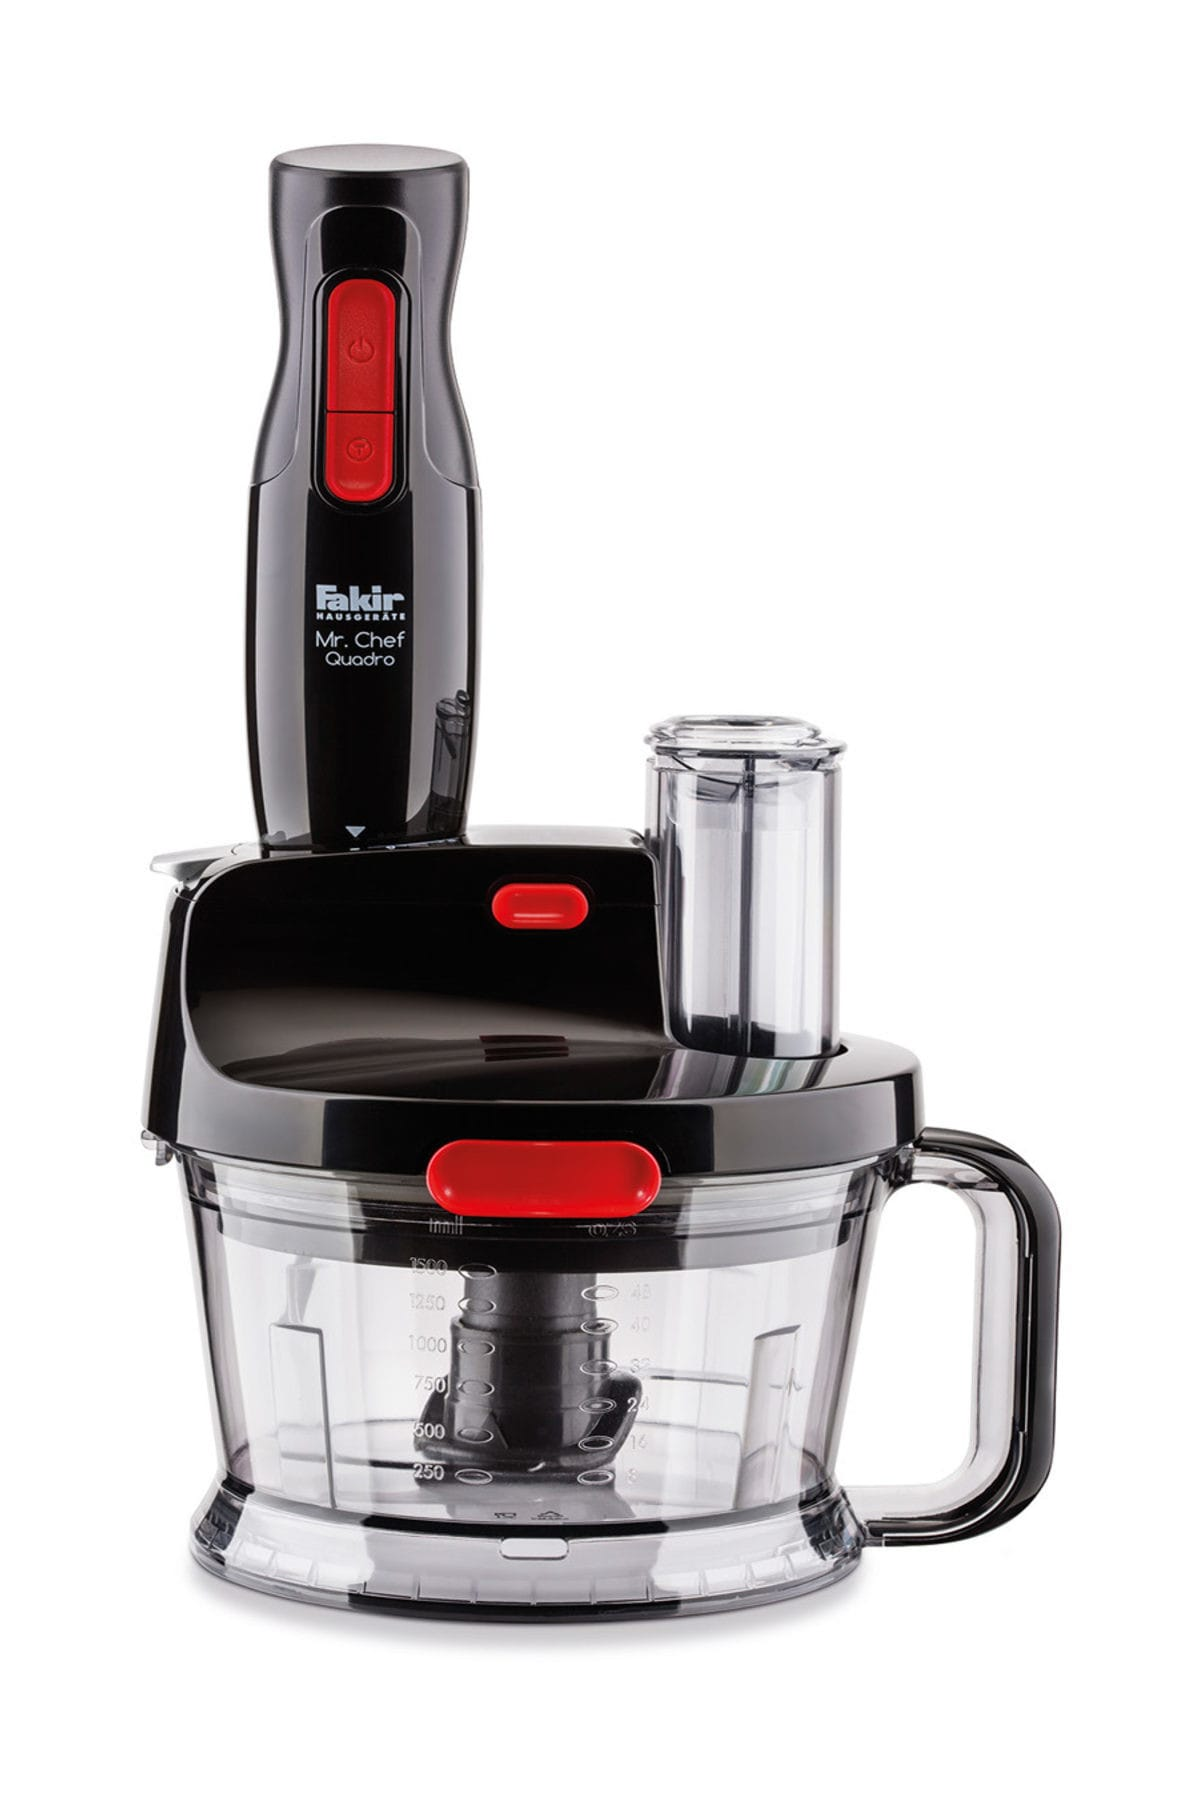 Fakir Mr Chef Quadro Blender Set Siyah 41002383 2